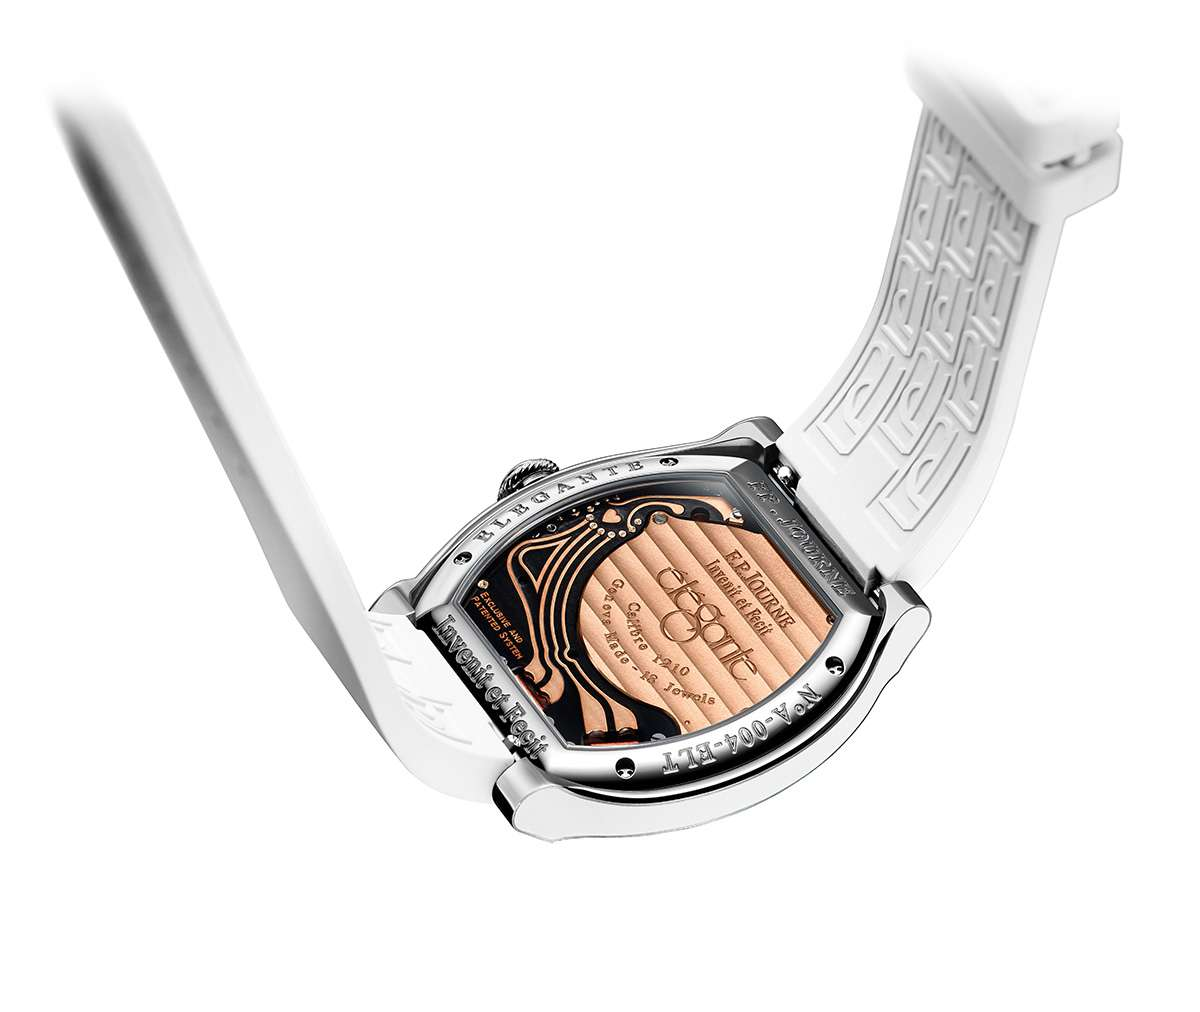 Caseback showing the battery bridge with Cotes de Genève decoration, the heart-shape denoting the microprocessor, and the circuitry